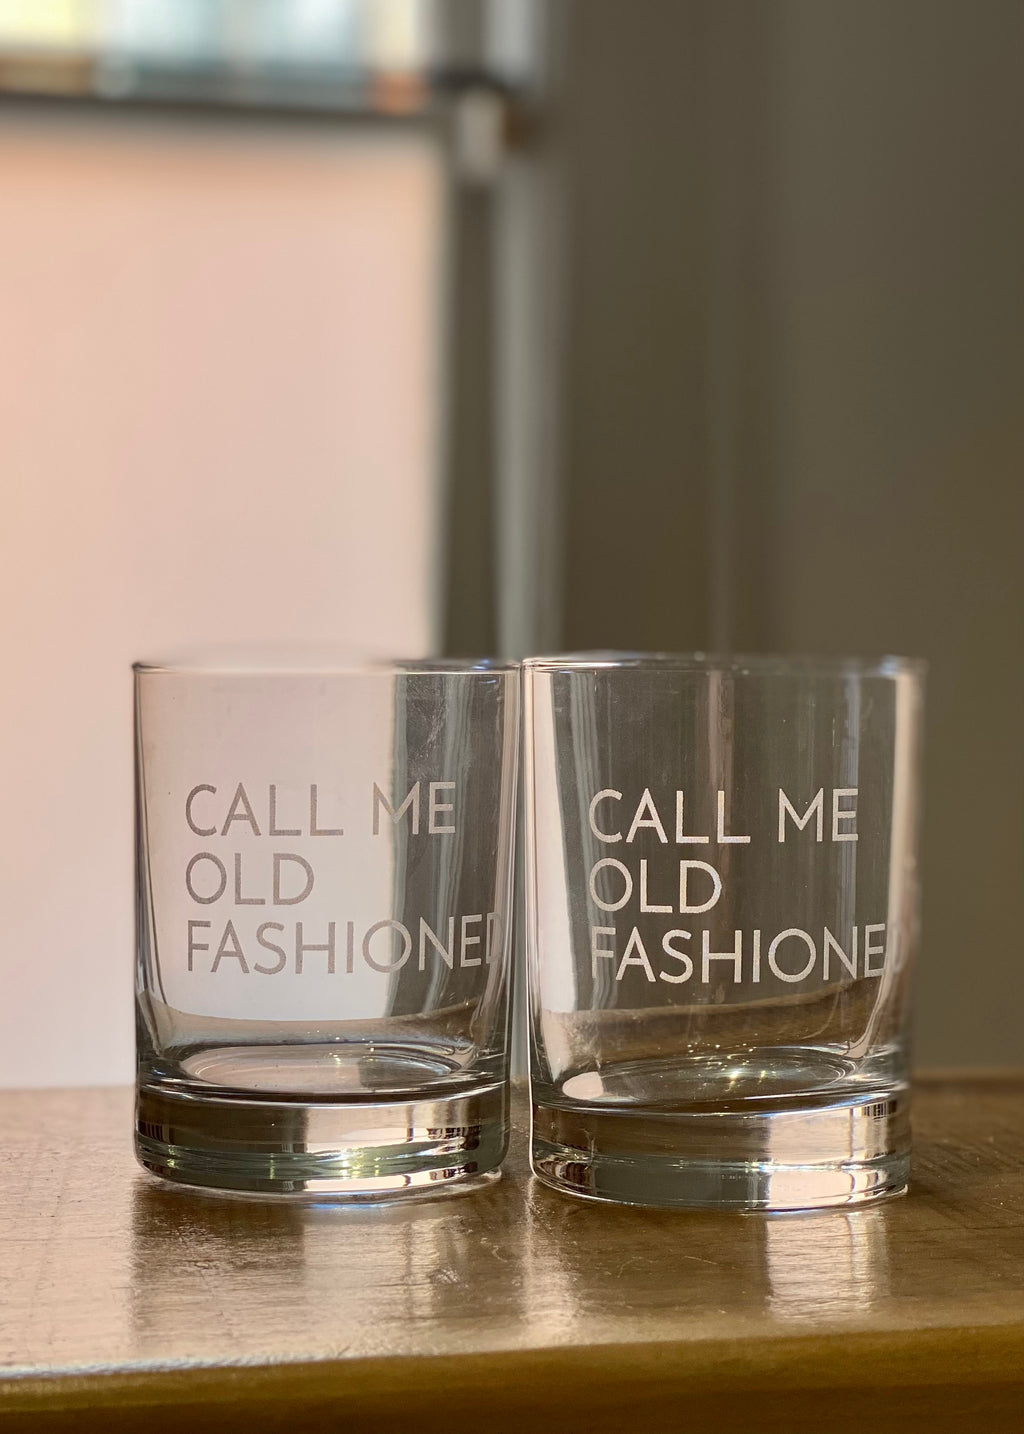 SET OF 2 CALL ME OLD FASHIONED GLASSES - Cooper & Bailey's